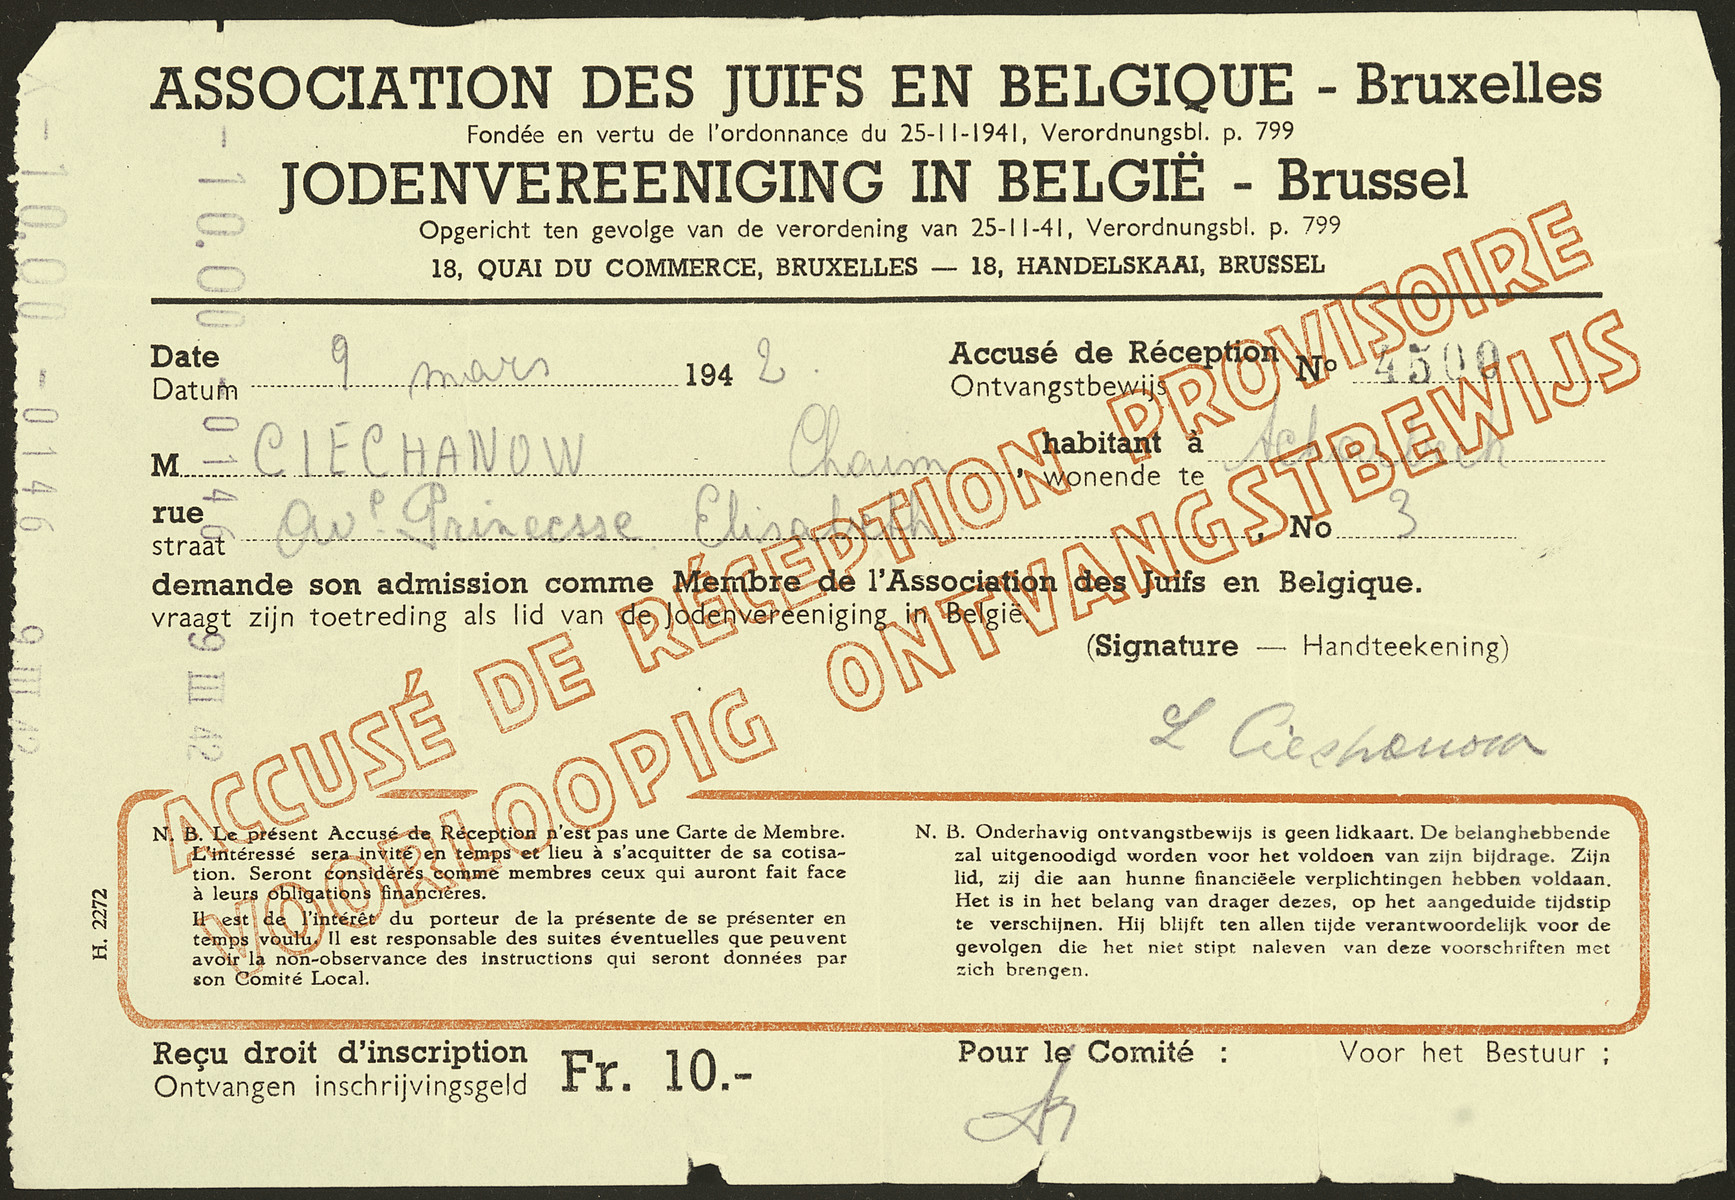 Jewish Association membership card issued to Chaim Ciechanow, uncle of the donor.  These papers were kept at the transit camp, Malines, after his deportation to Auschwitz.  Malines held on to the documentation for sixty-two years before sending it to Flora Singer, the surviving next-of-kin, in 2006.